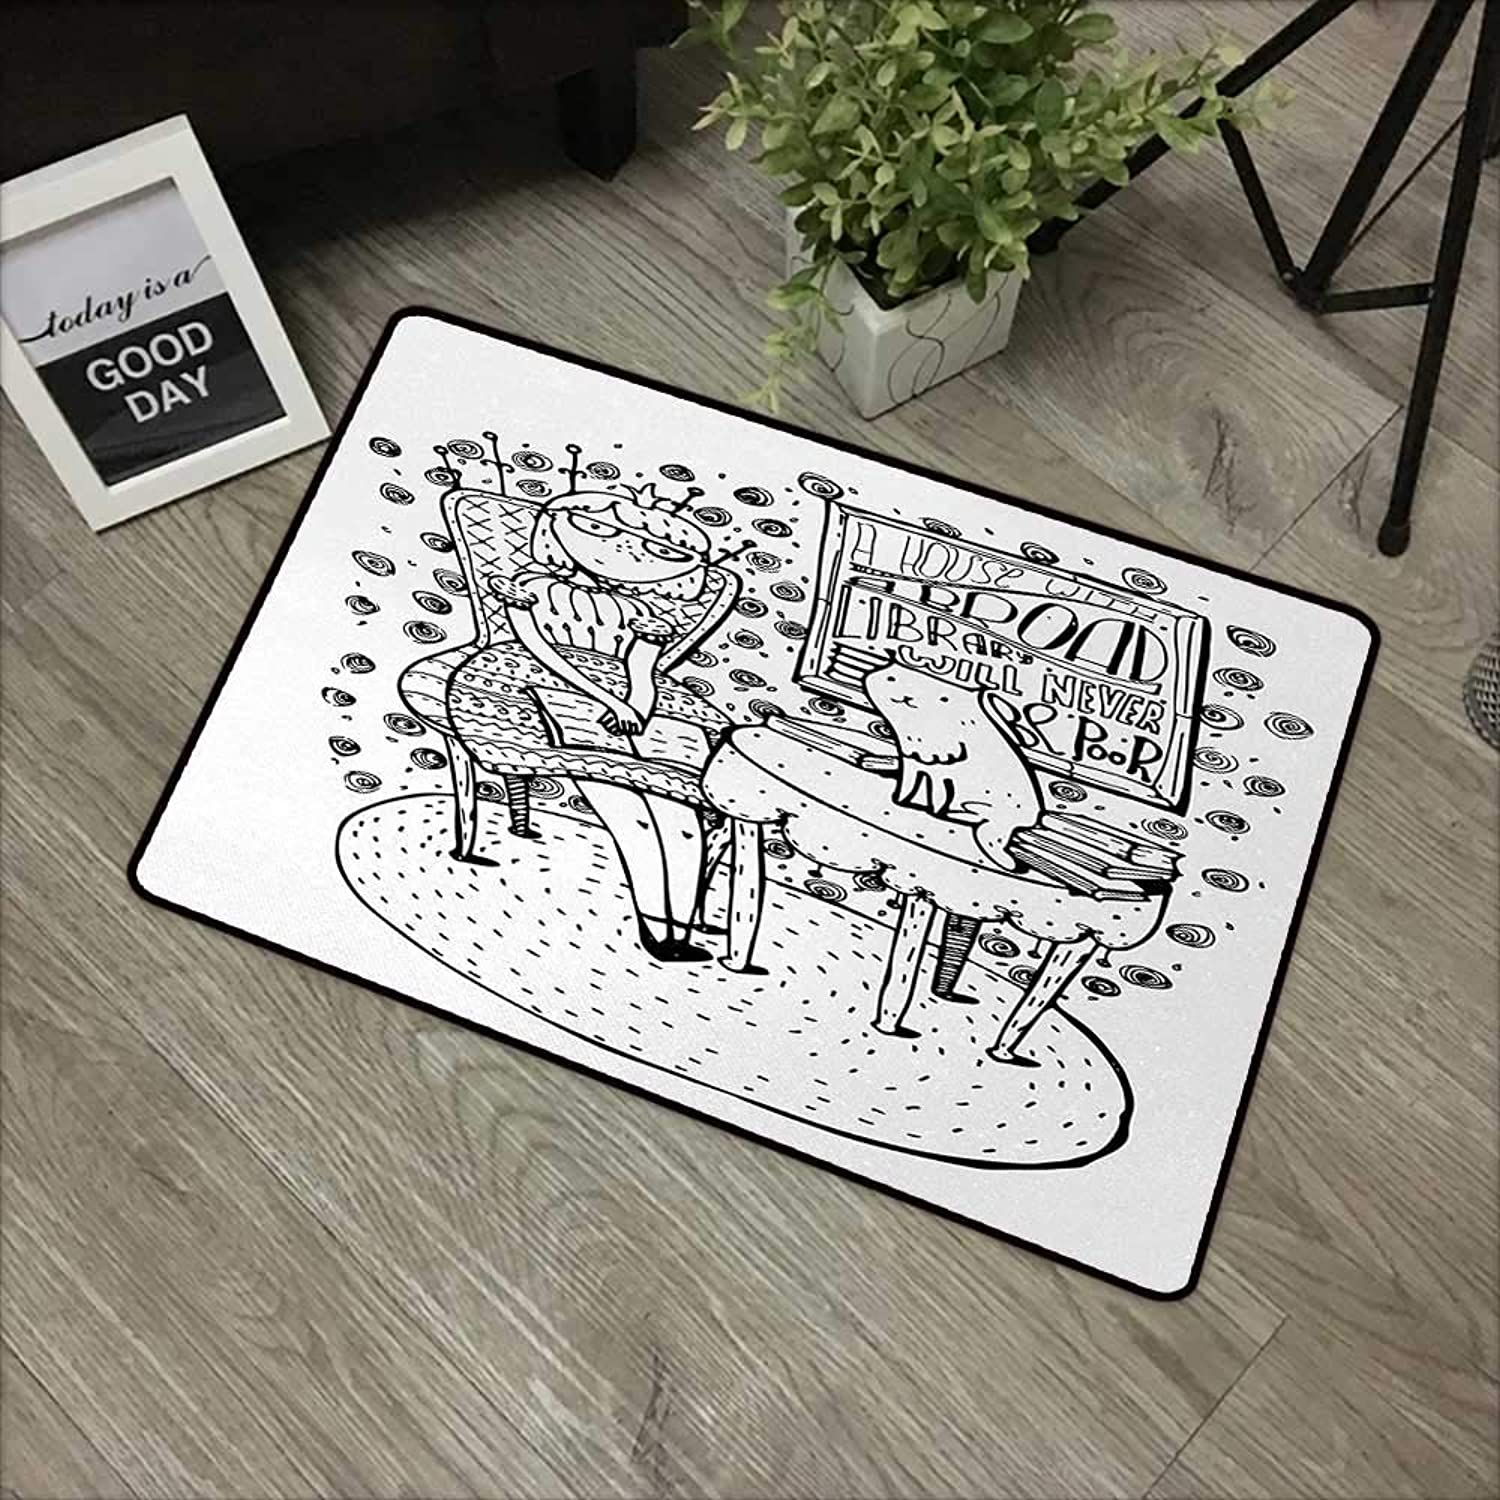 Square Door mat W35 x L59 INCH Book,Cartoon Style Hand Drawn Girl Sitting with a Book and Cat Glasses Crown Happy Cat,Black White Non-Slip, with Non-Slip Backing,Non-Slip Door Mat Carpet